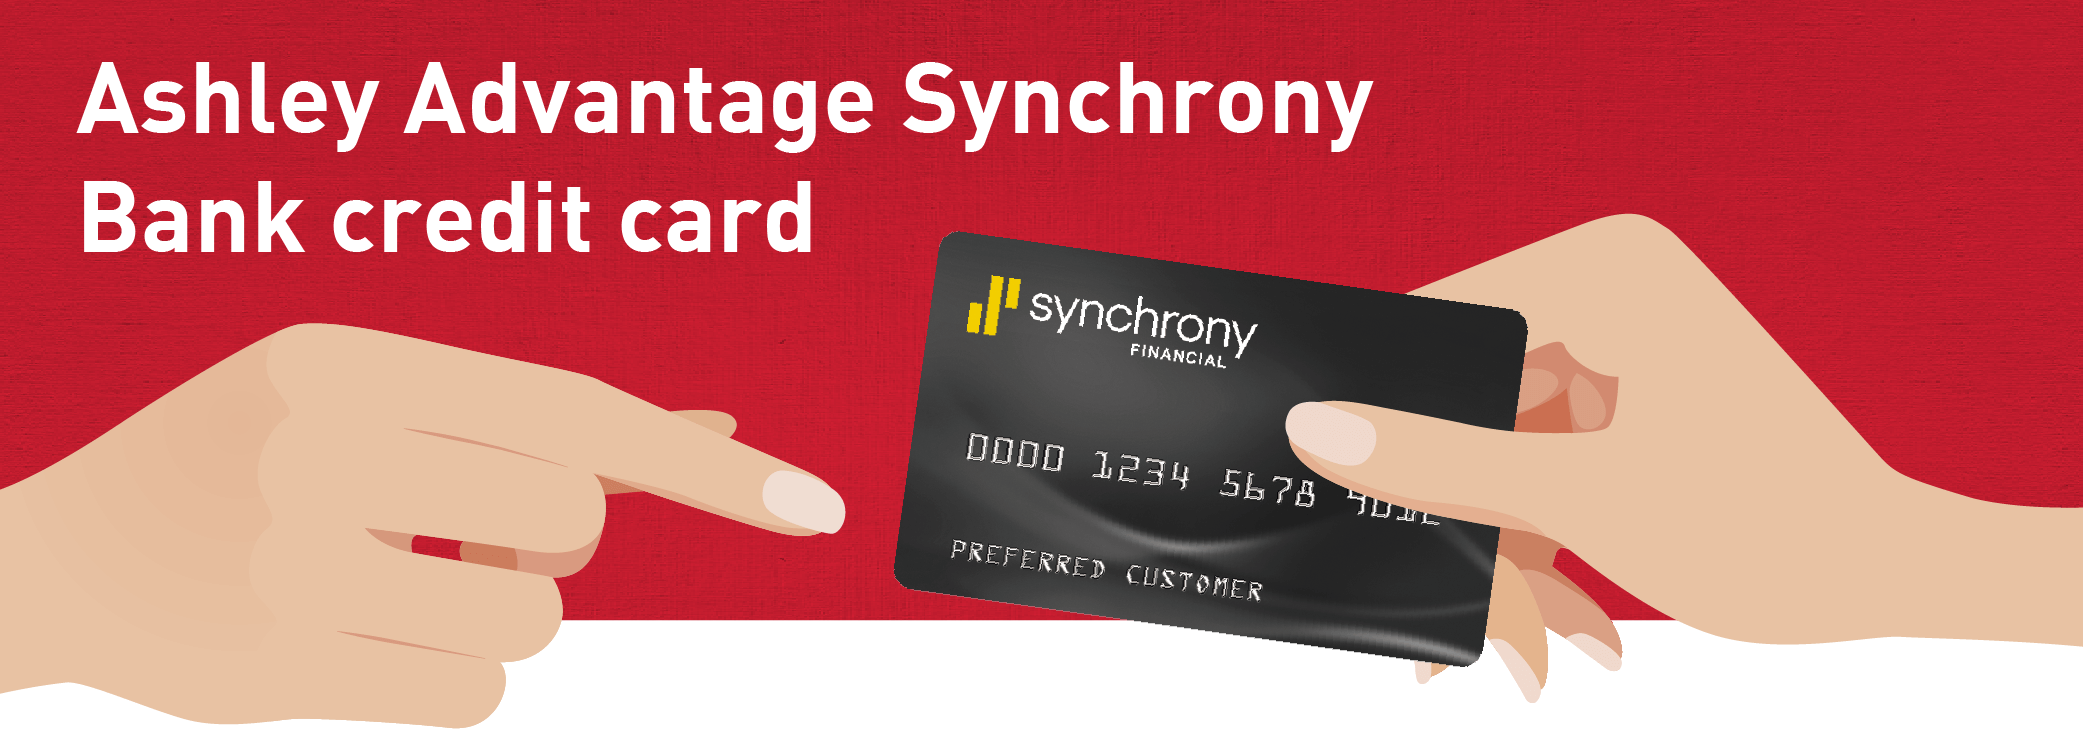 Home Design Credit Card Synchrony Bank Synchrony Bank Credit Cards Home Design Modern Home